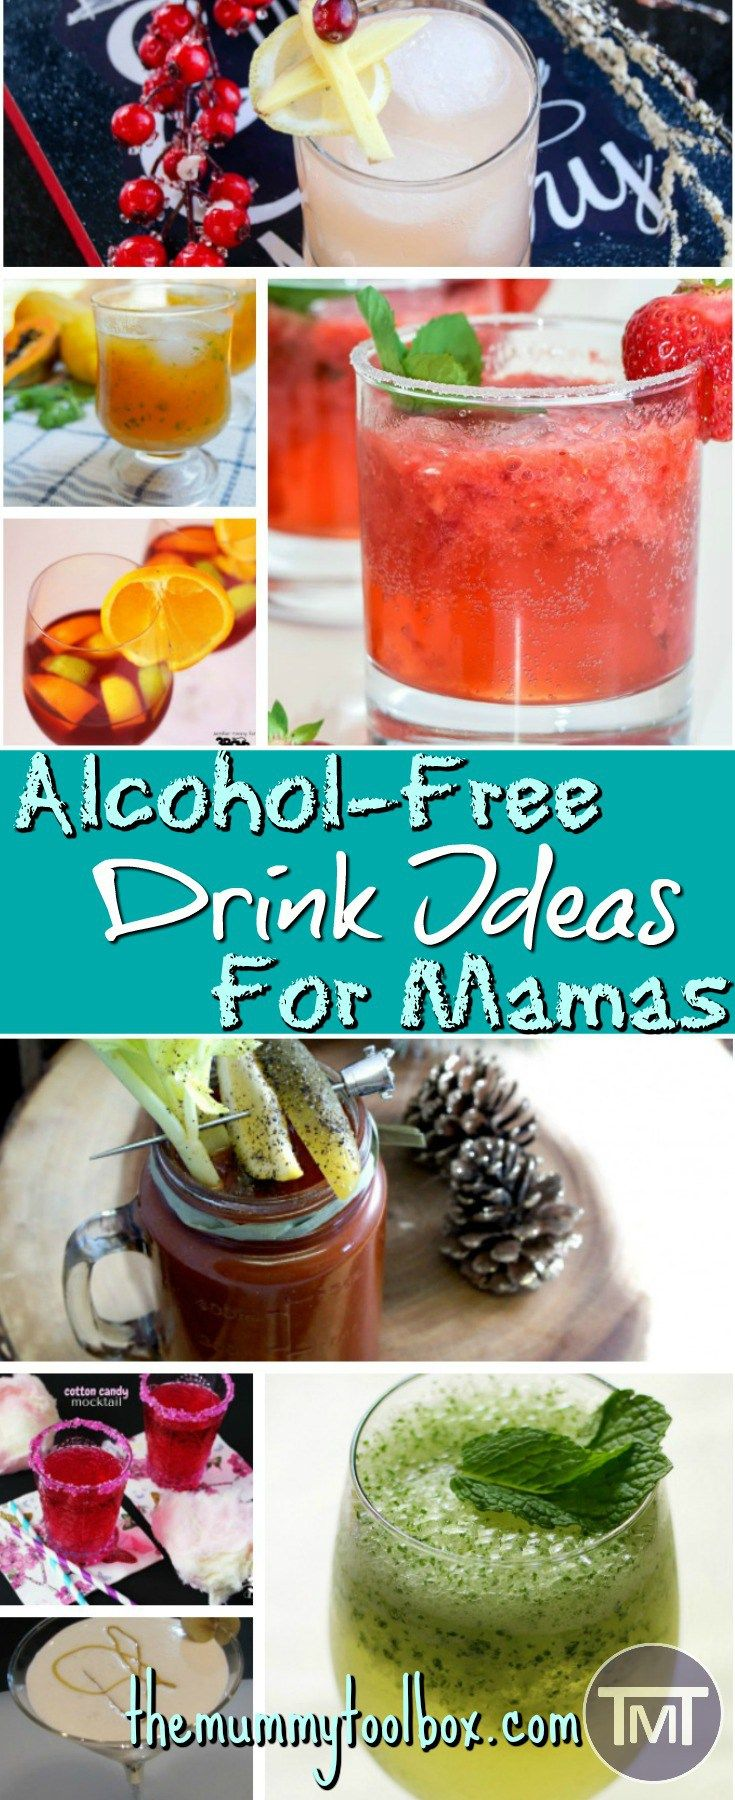 Ah pregnancy, the time of growth and relaxation, but not booze. In case you are feeling a little left out, here are some alcohol-free drinks for the mamas. #alcoholfree #drinks #drinkideas #mocktails #pregnancy